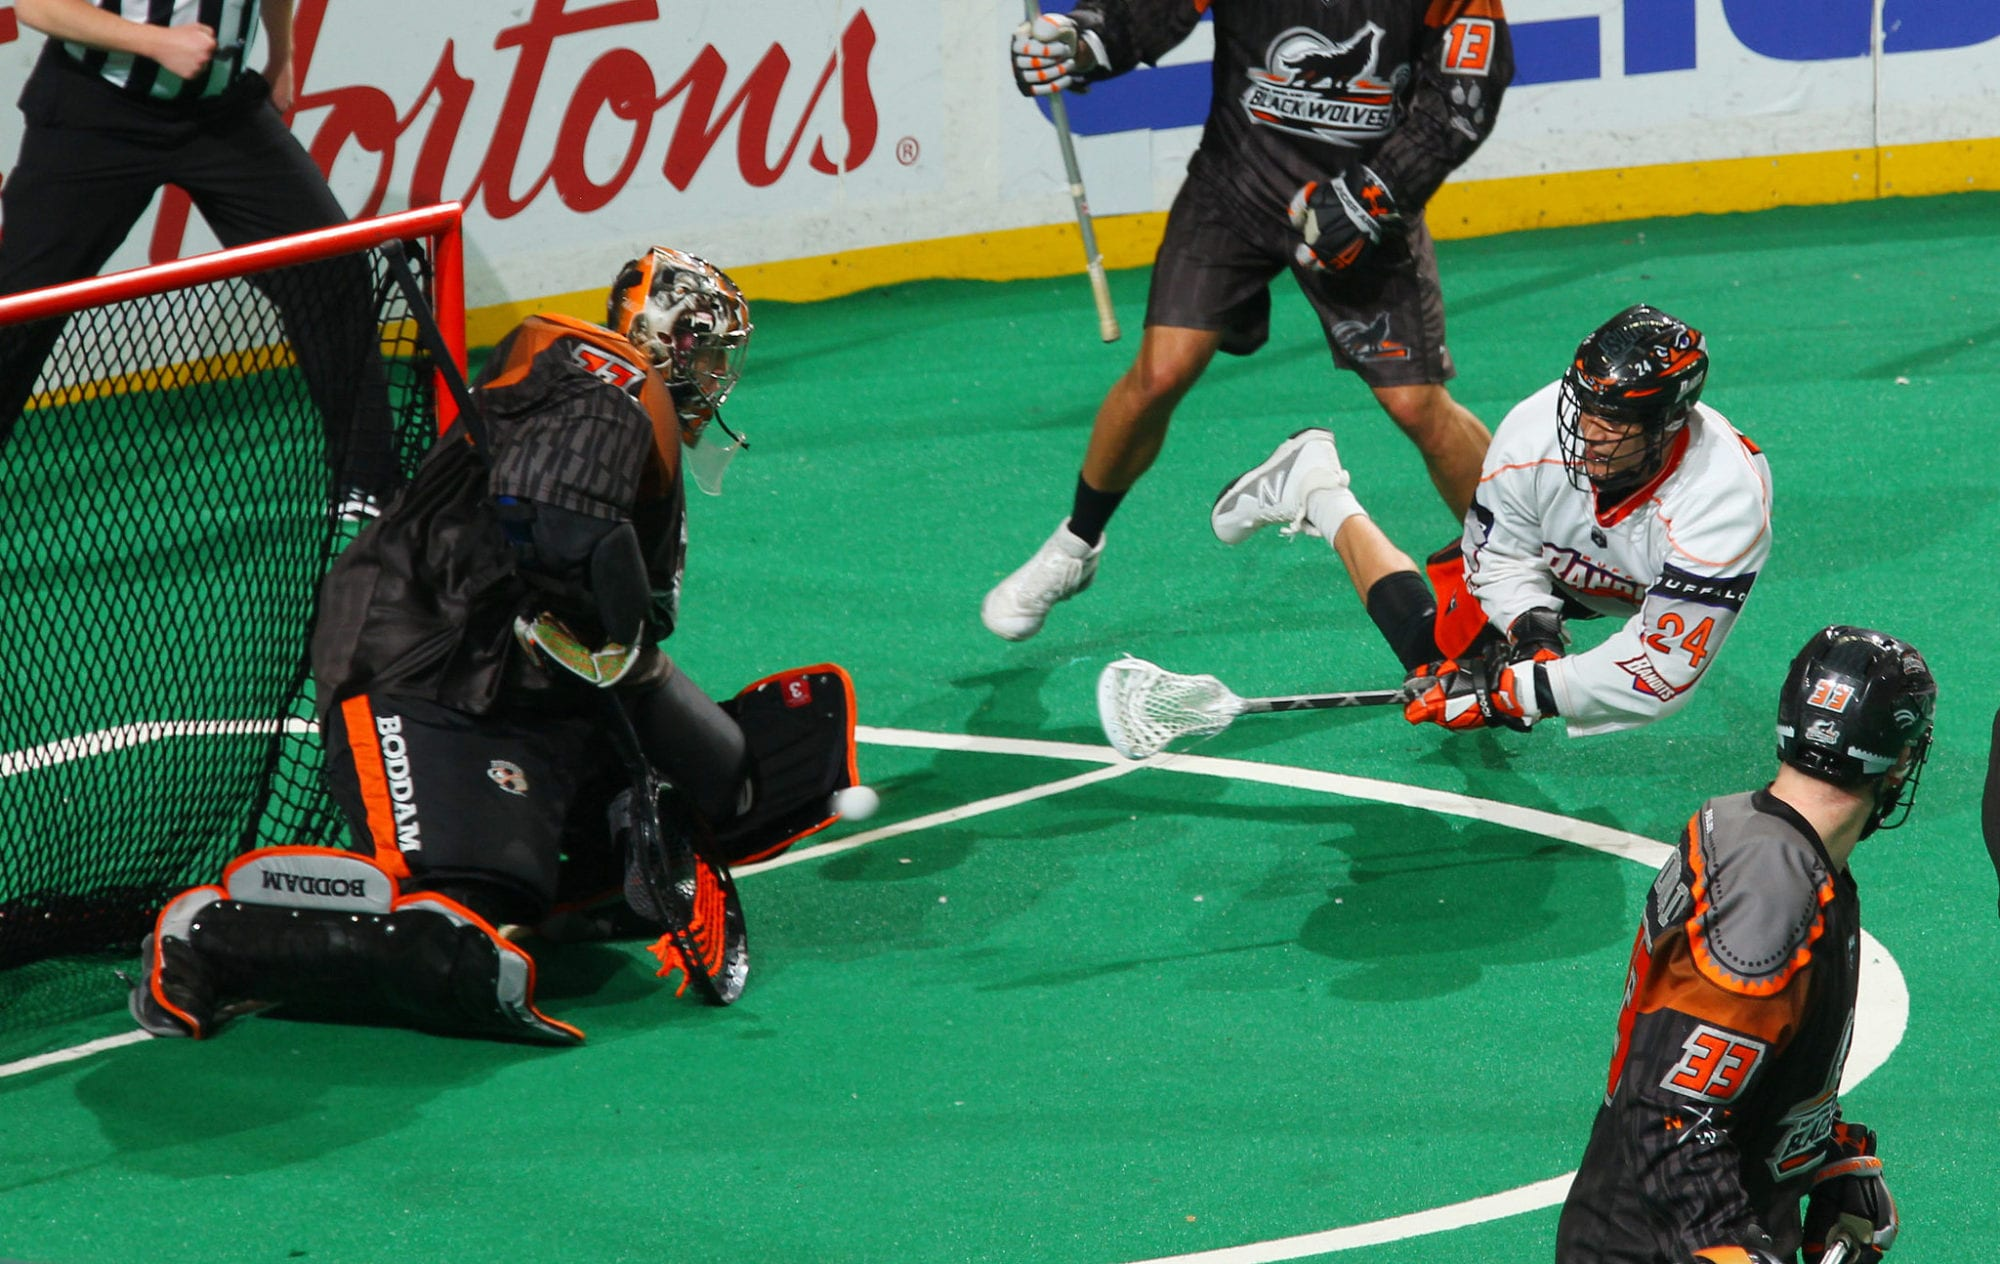 Random Thoughts: Offensive Issues, East Tiebreakers, No Canada Buffalo Bandits vs New England Black Wolves. KeyBank Center, Buffalo, NY. March 31, 2018. Photo by Bill Wippert